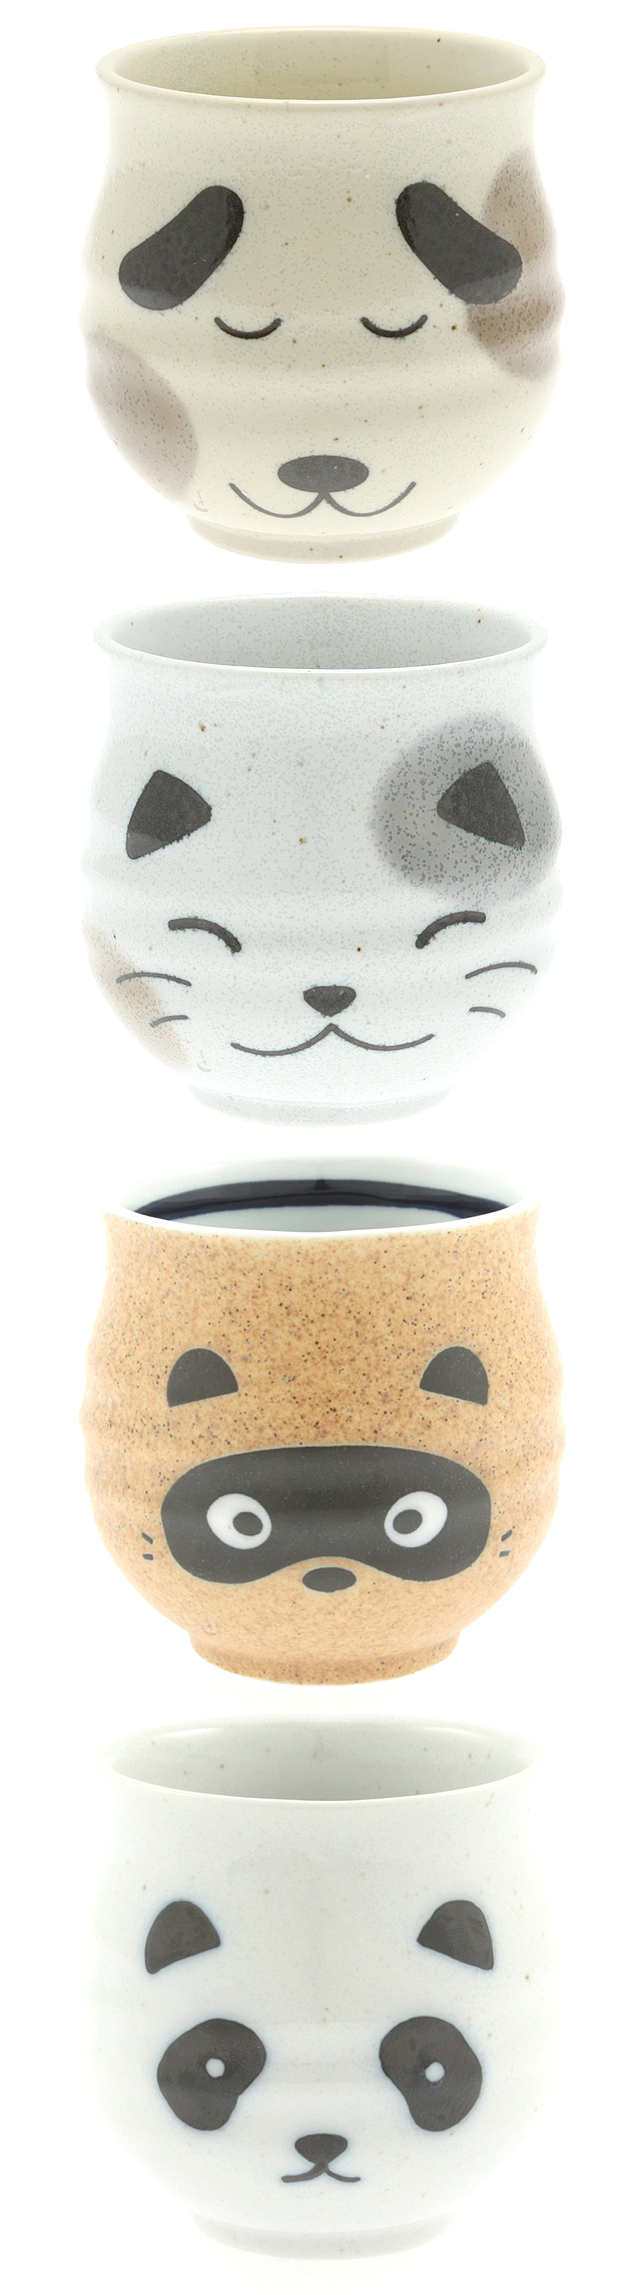 Cute dog, cat, badger and panda animal teacup set - perfect for drinking green tea with roasted rice #product_design